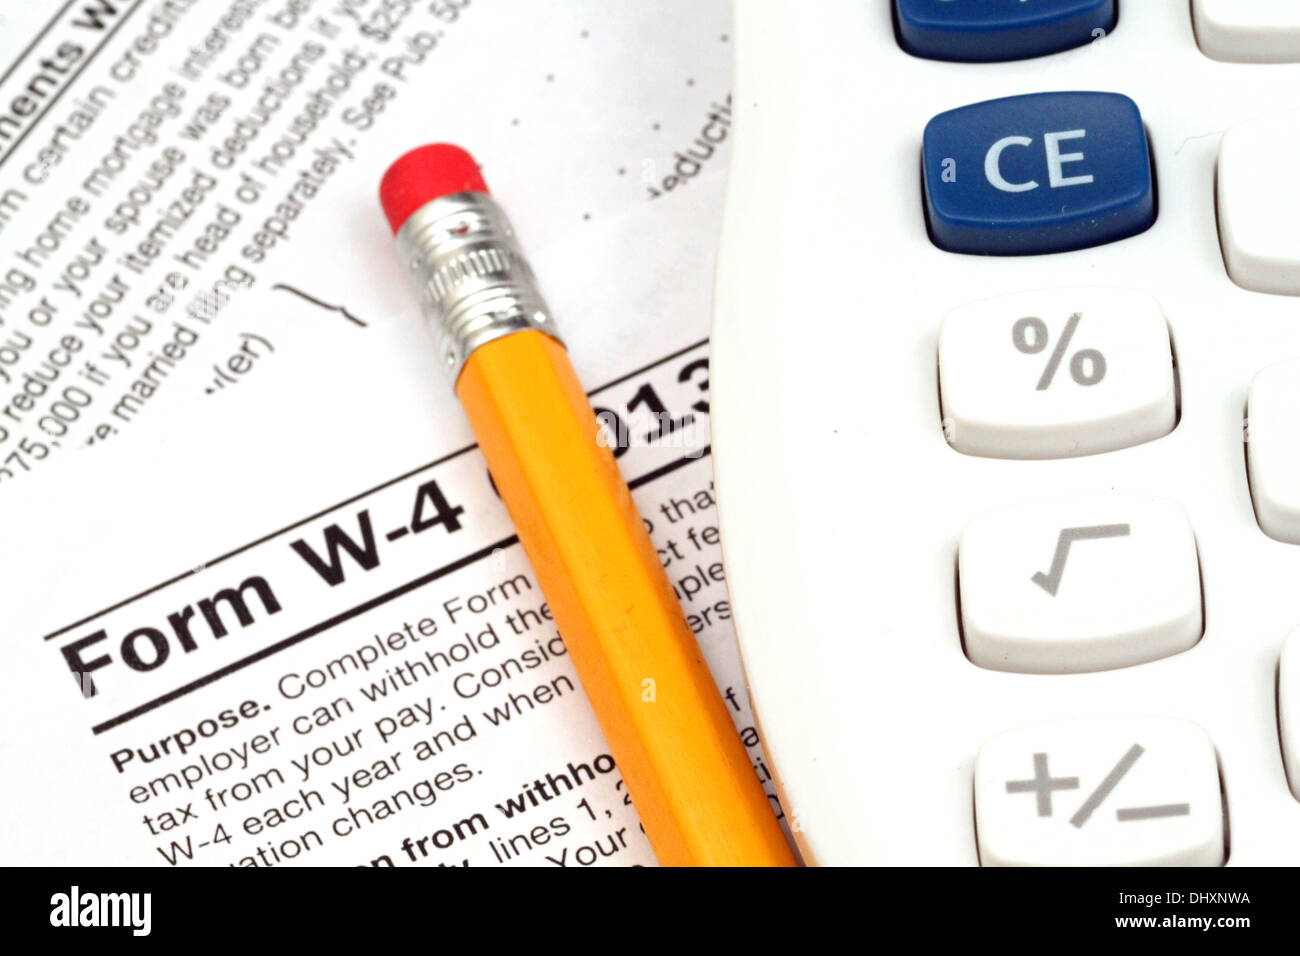 Irs form w 4 close up with tax preparation tools stock photo irs form w 4 close up with tax preparation tools falaconquin